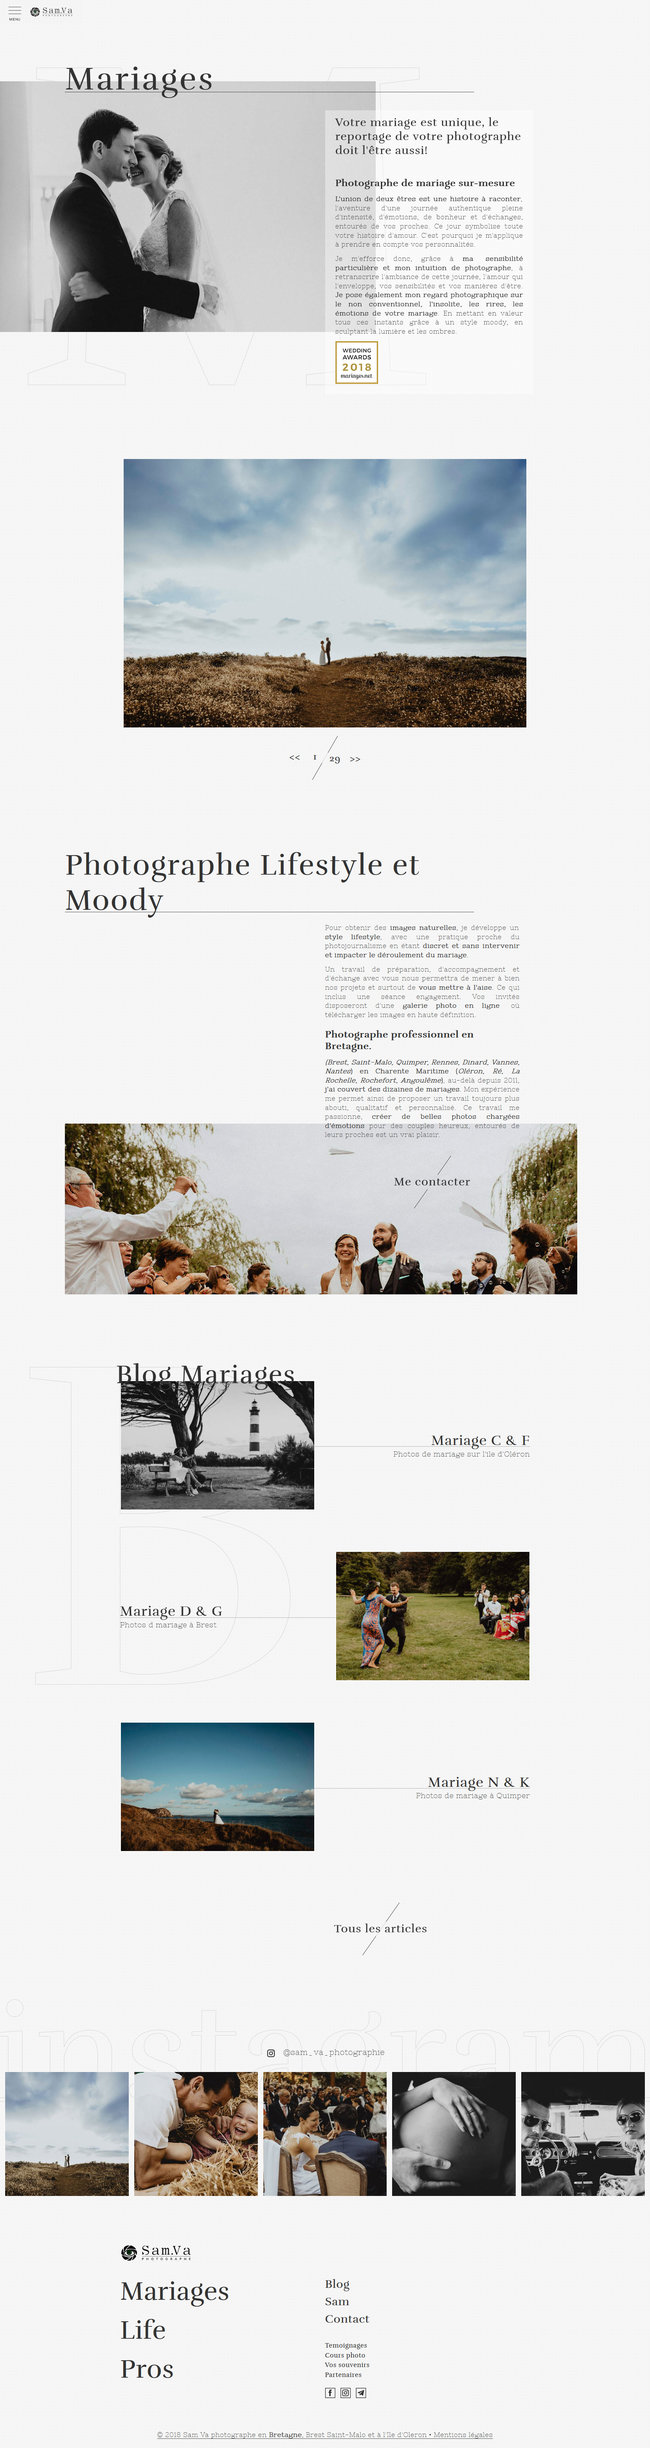 Wedding page showcasing selected work